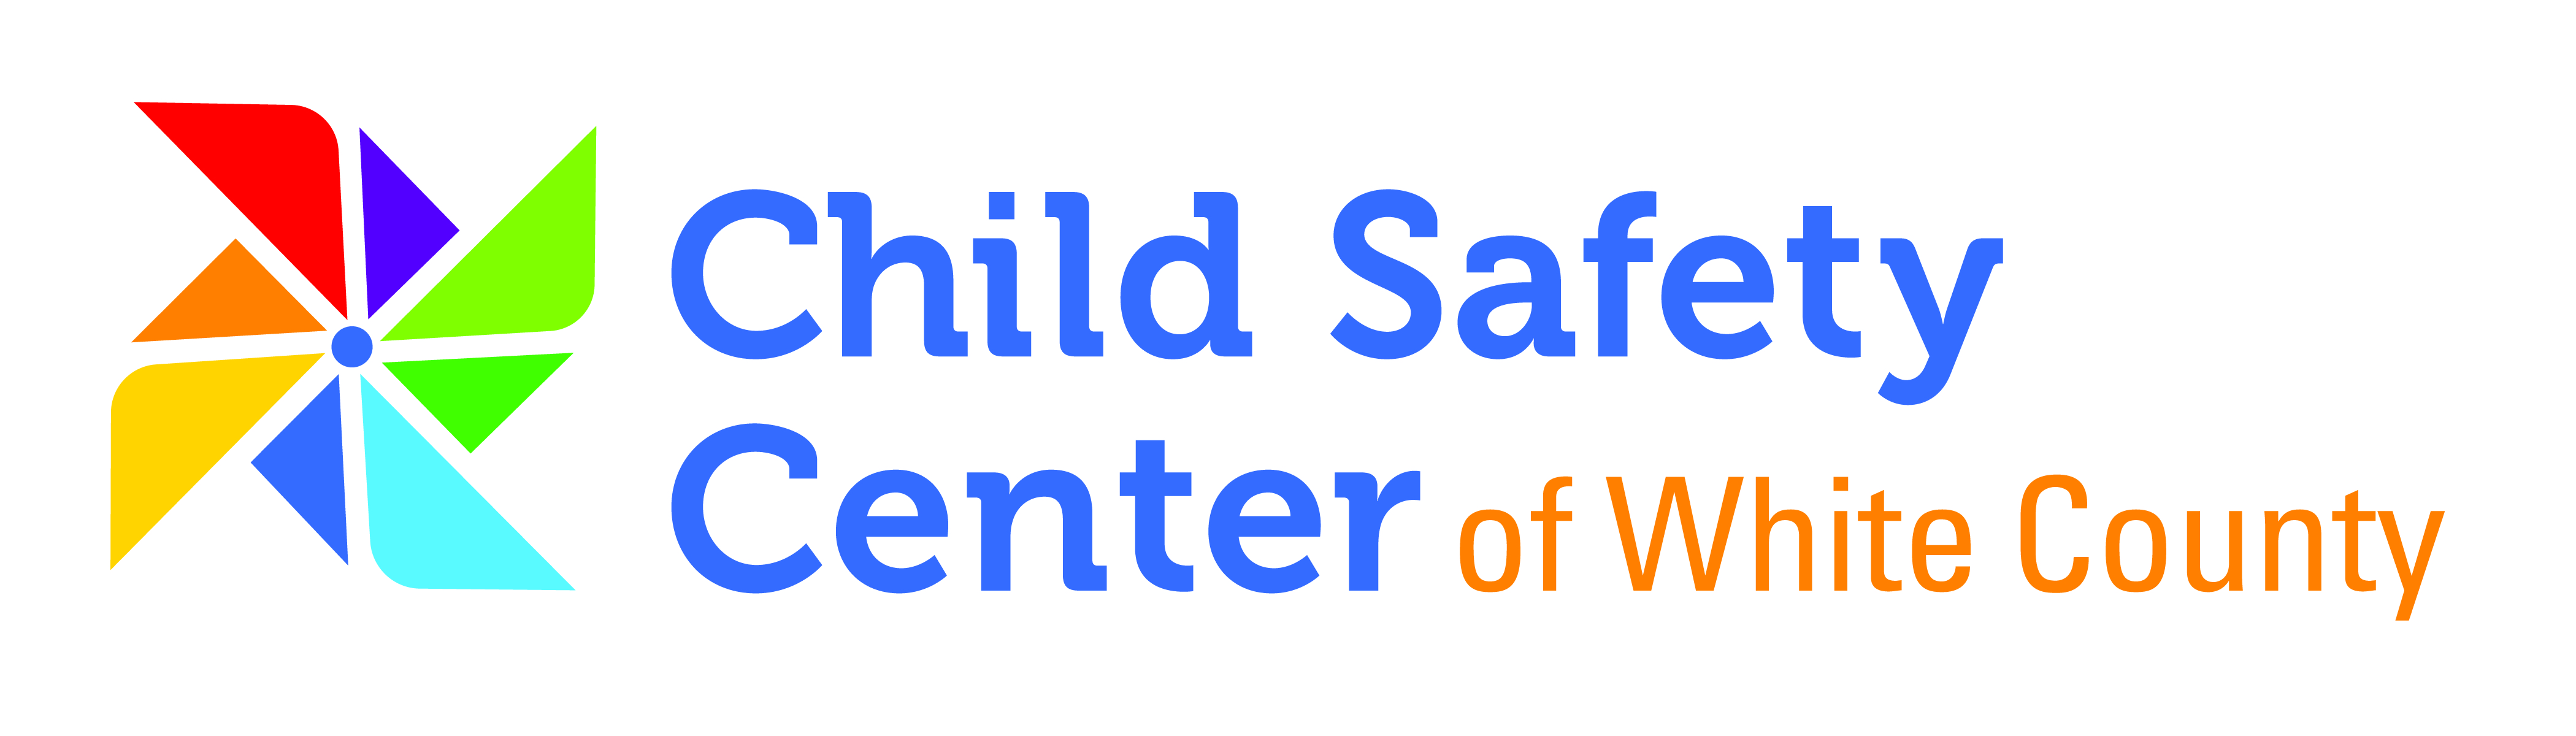 Child Safety Center